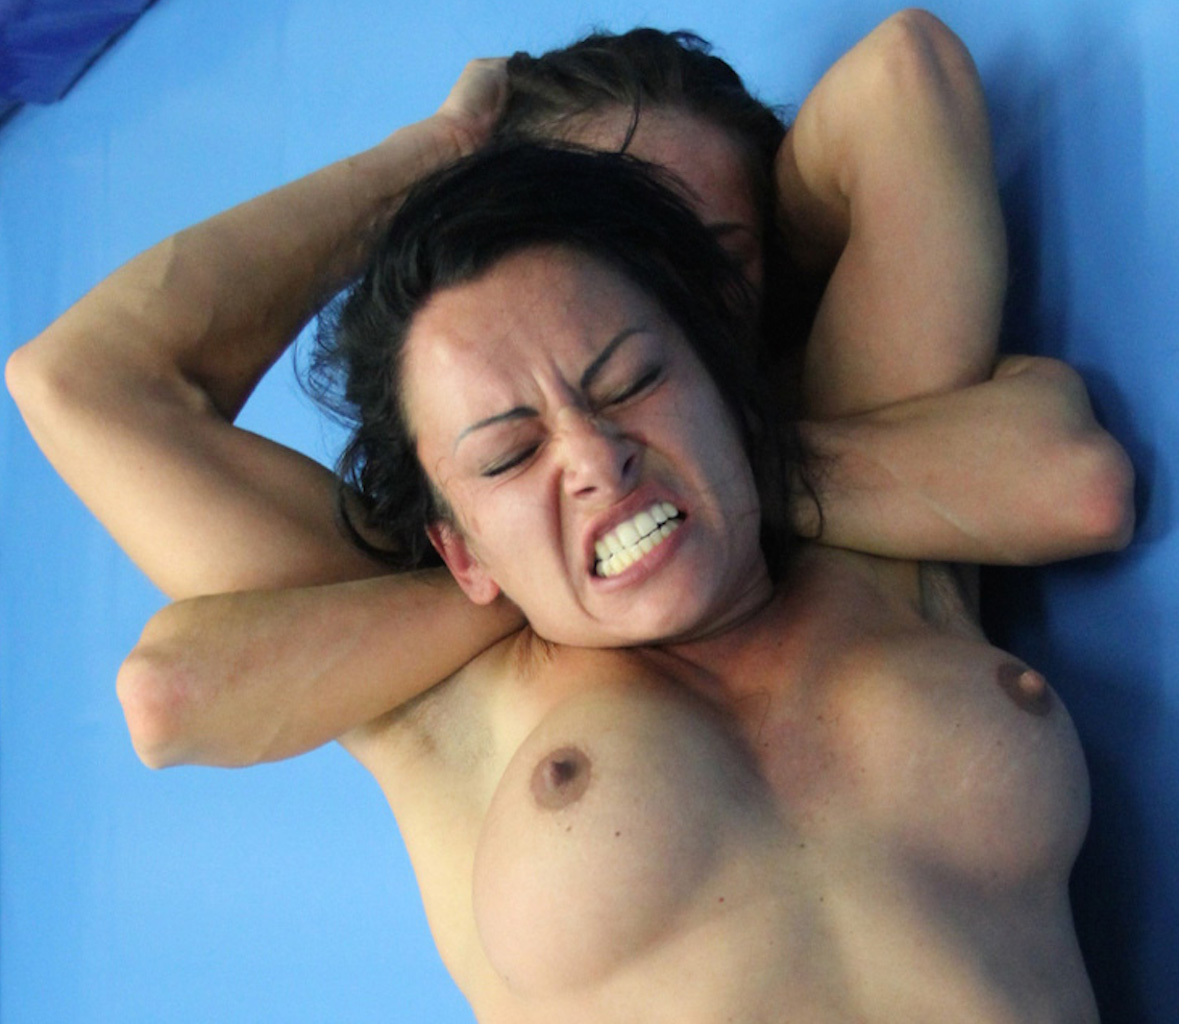 old-ladies-naked-wrestling-mens-dicks-doing-sex